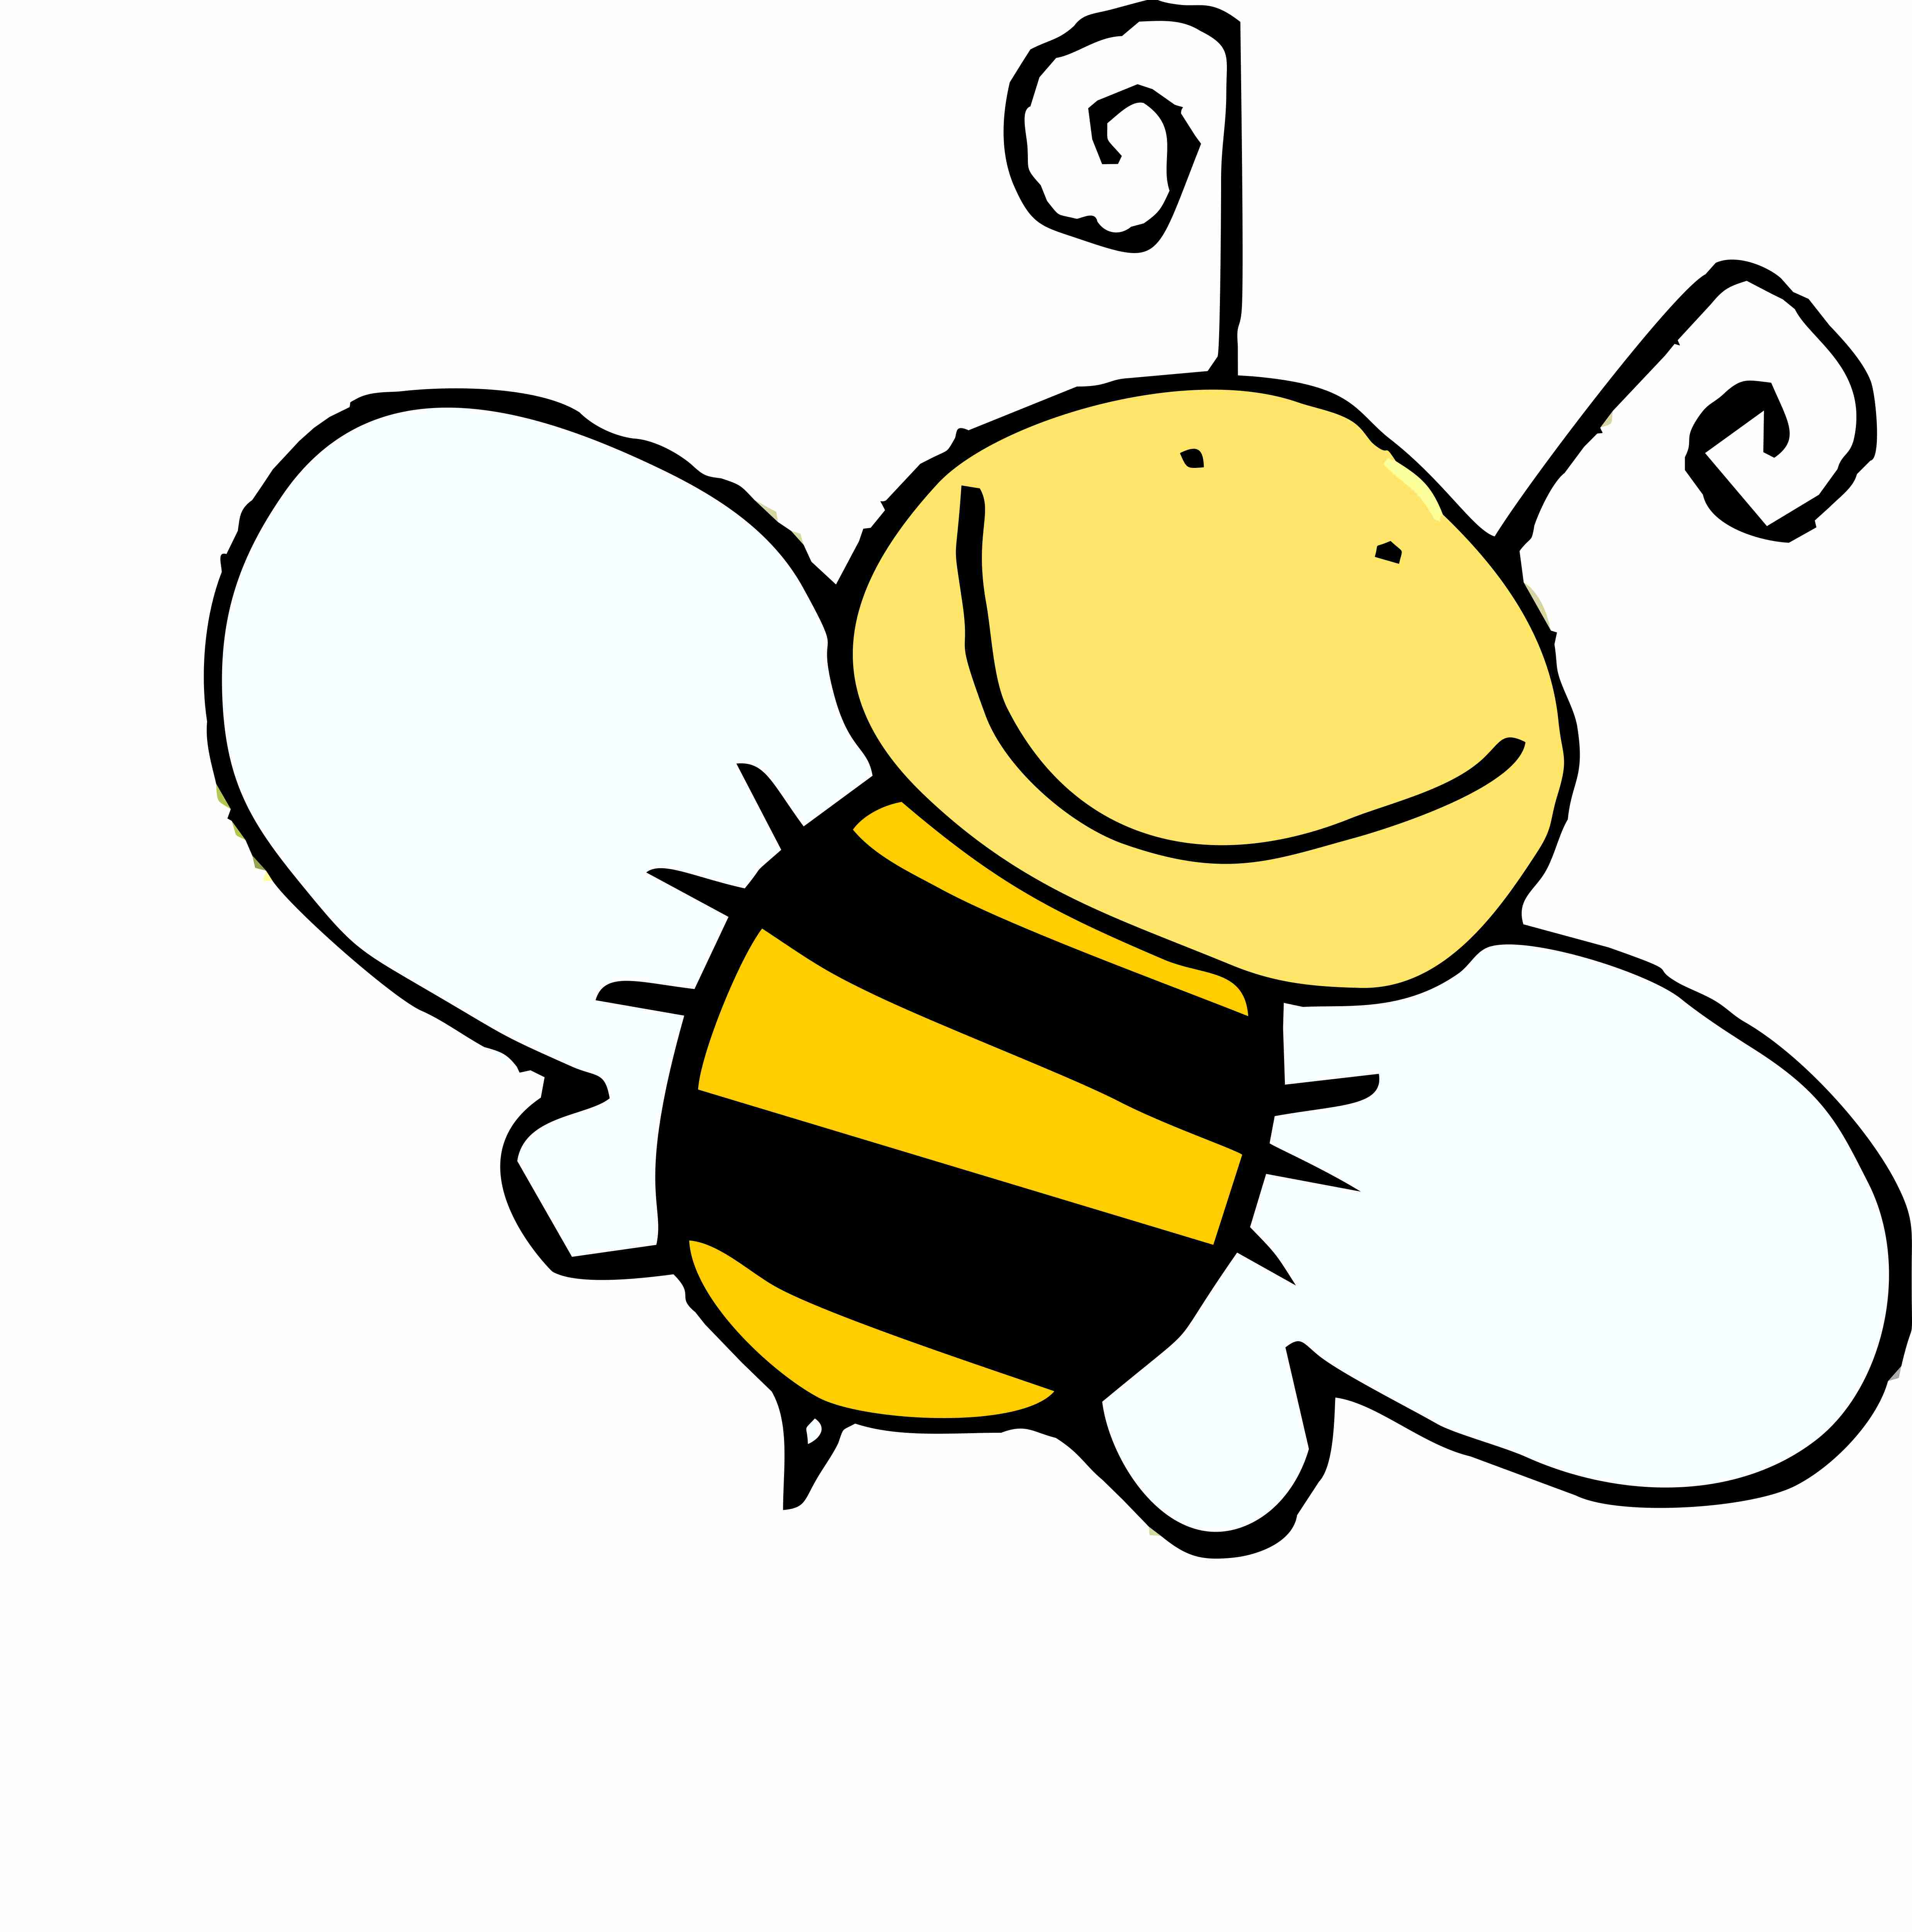 Honey bee drawing simple. Bees clipart cartoon